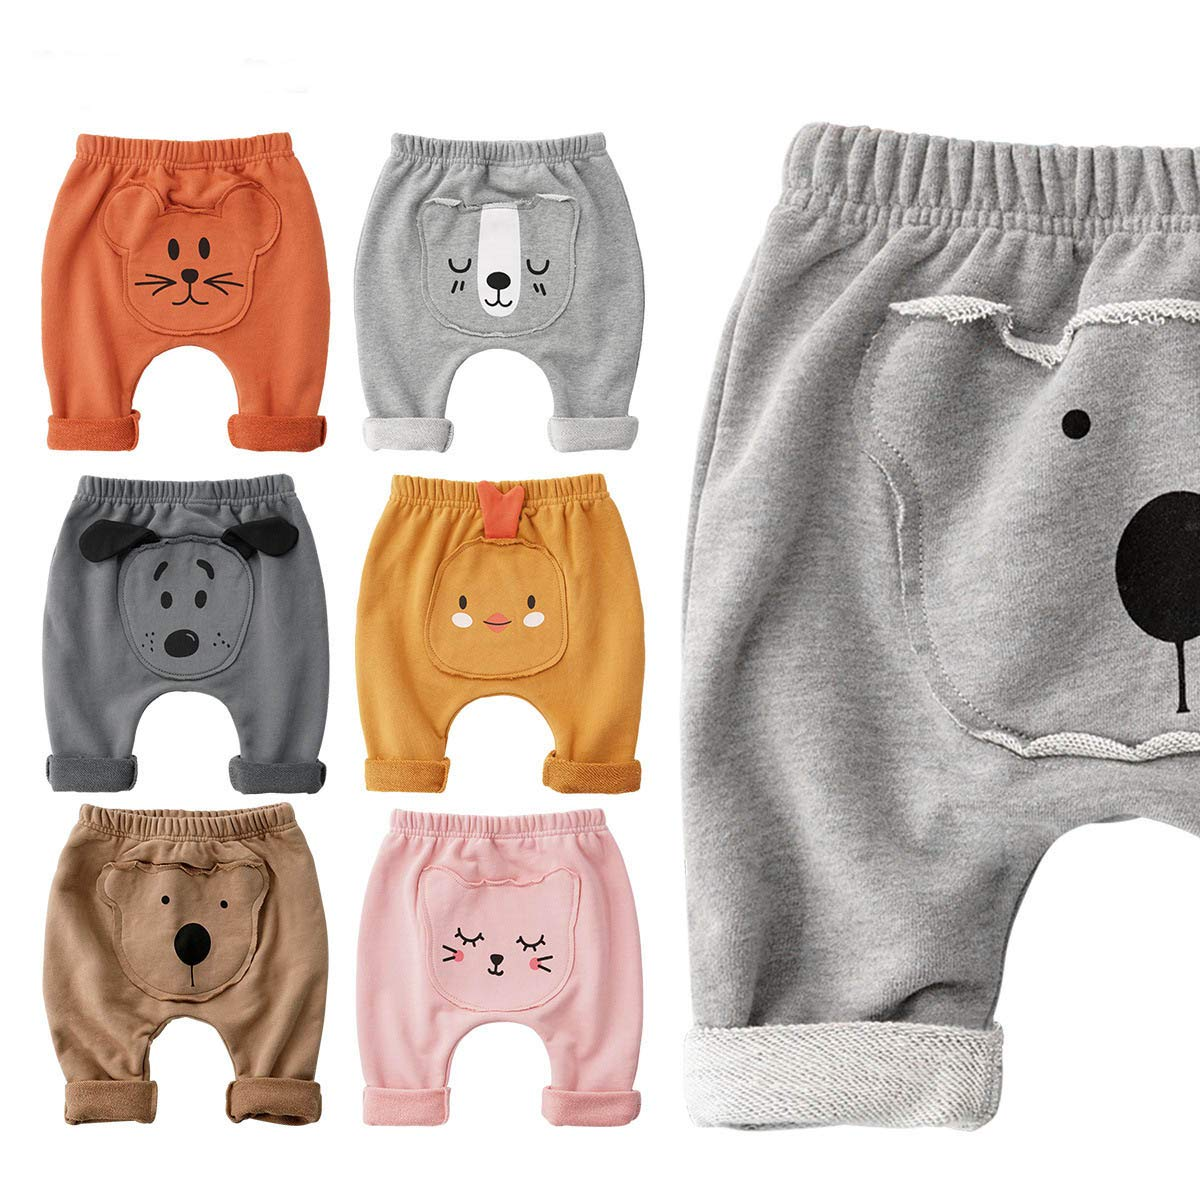 SYCLZ Baby Boys Girls Pants Cartoon Animal Pattern Casual Harem Pants Spring Autumn 3M-24M